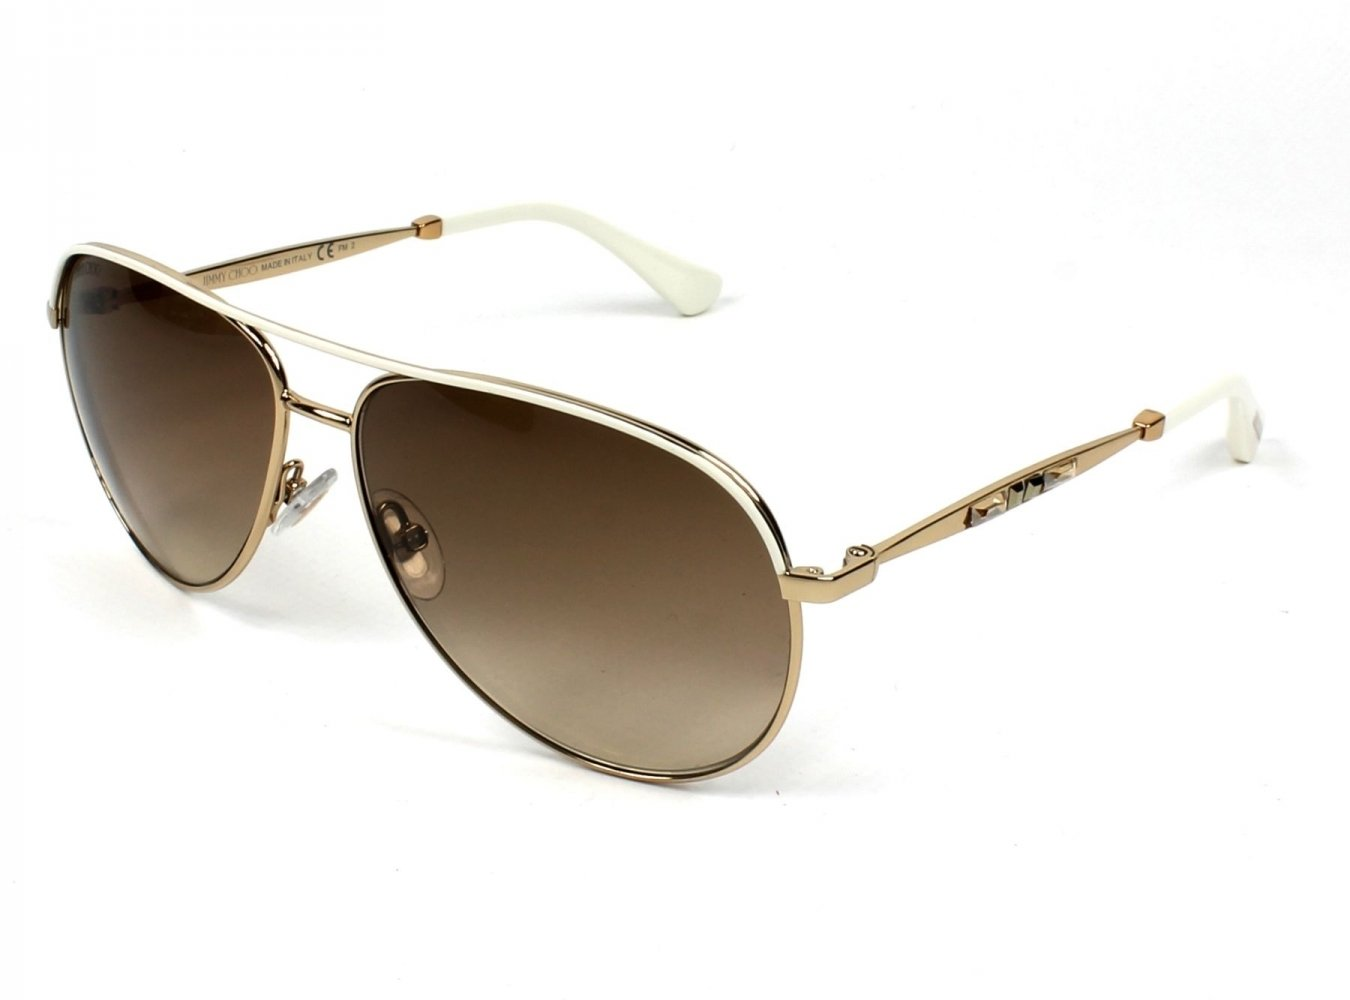 Jimmy Choo Jewly/s Gold Sunglasses by Gucci